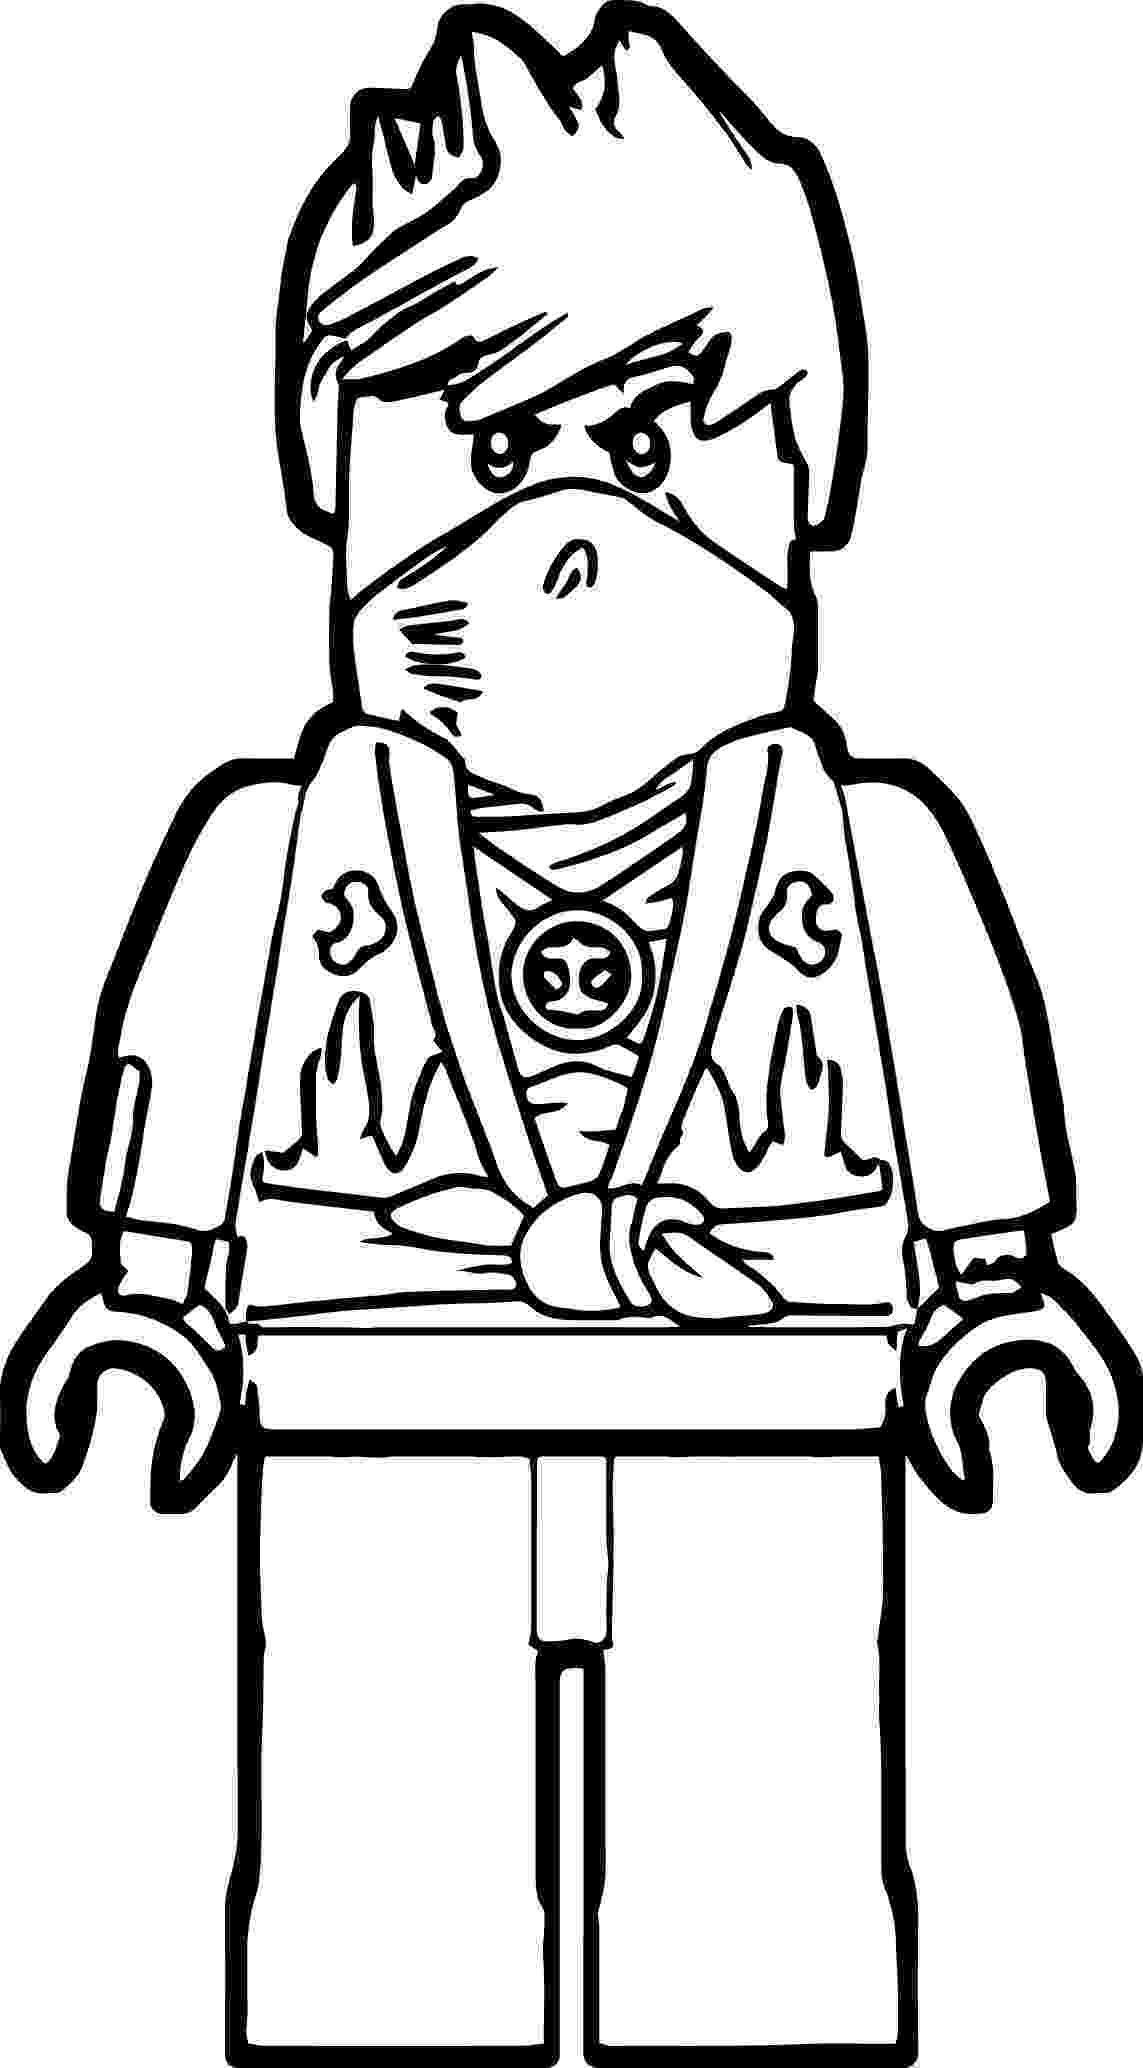 lego man coloring pages lego coloring pages free download best lego coloring pages coloring lego man